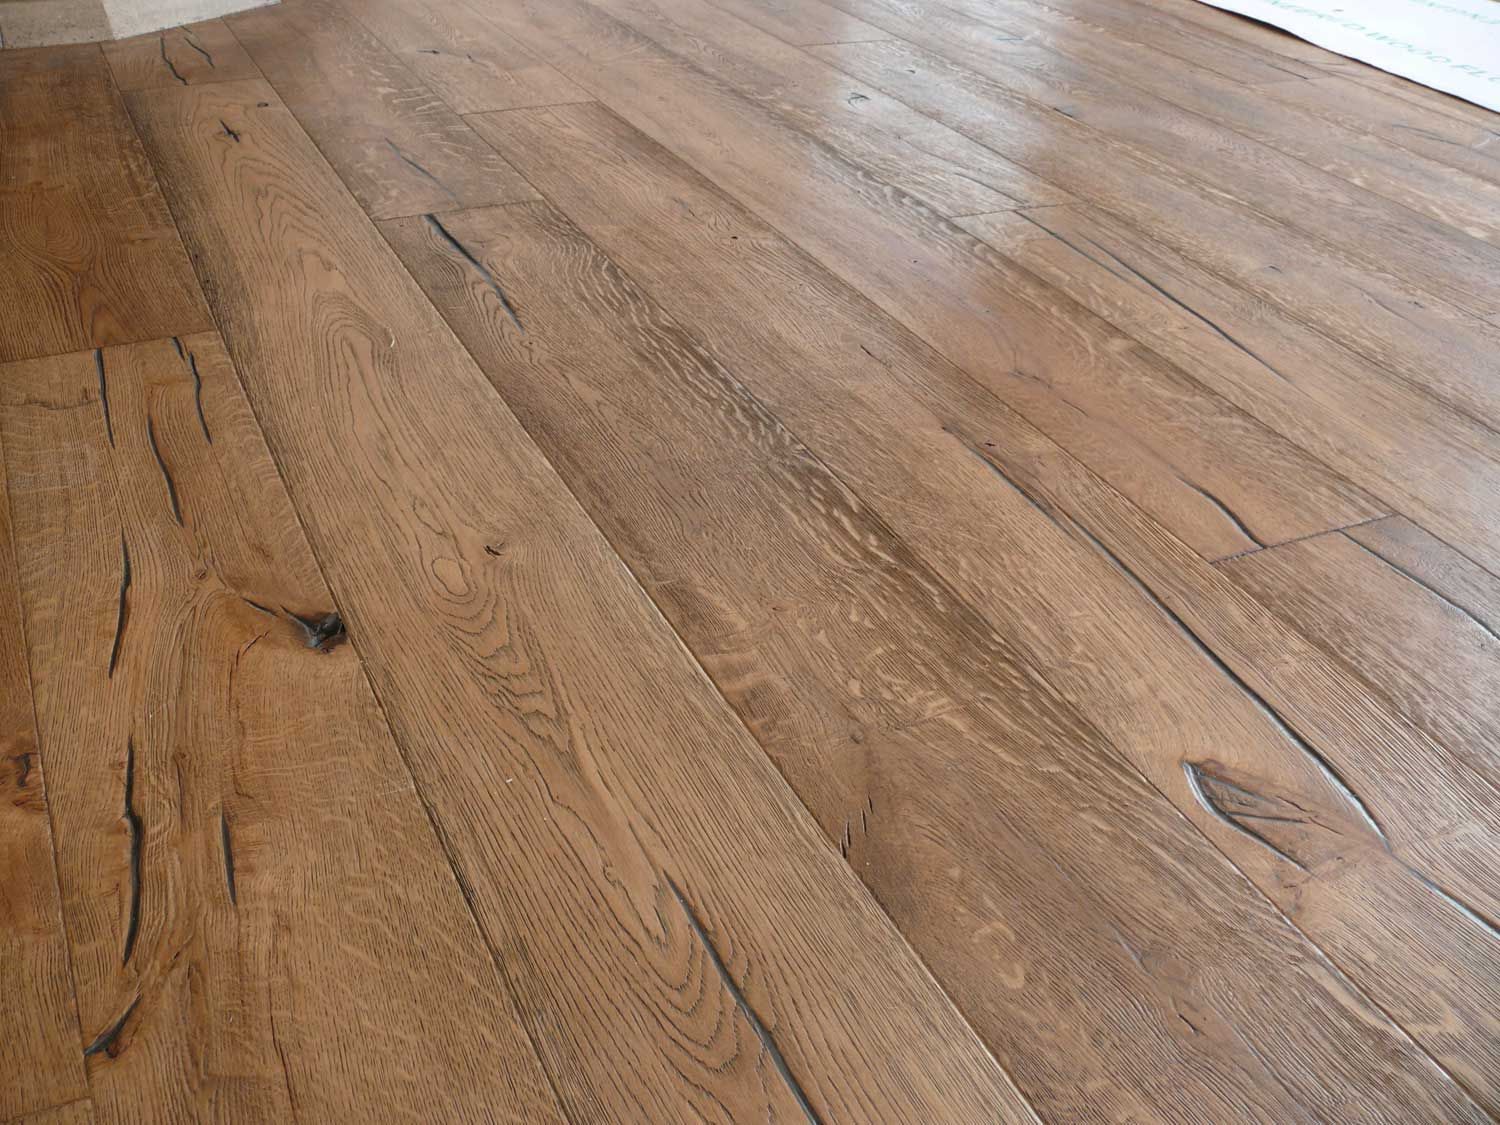 Unfinished Distressed Engineered Oak With Granwax Antiqued Coloured Hardwax Oil Applied After Wood Floors Wide Plank Types Of Wood Flooring Modern Wood Floors